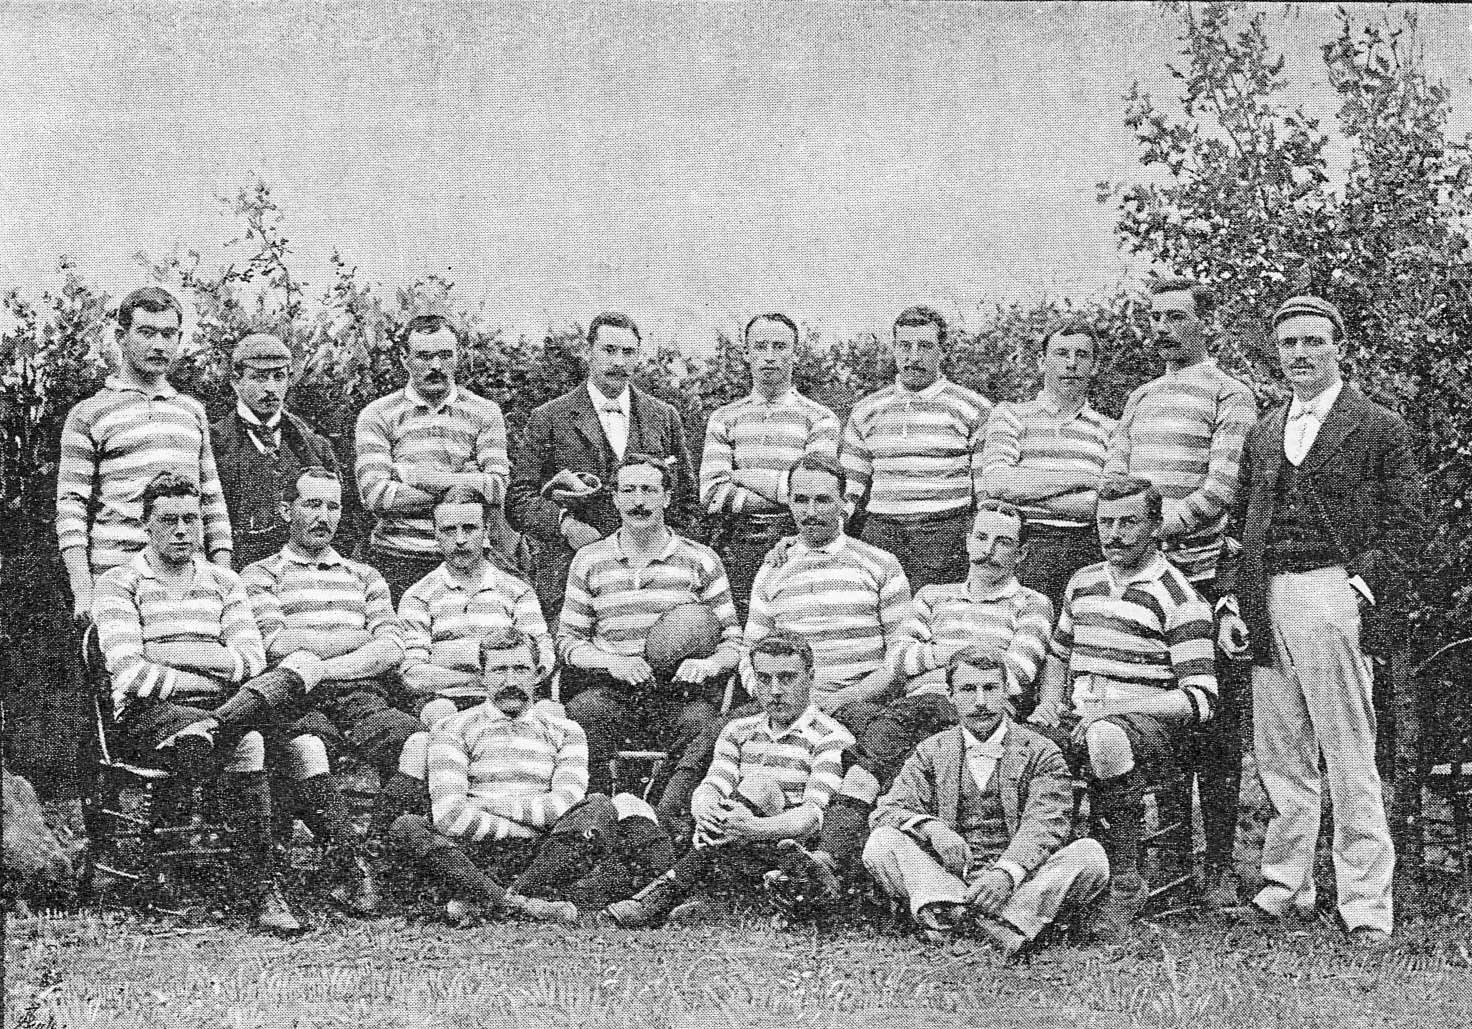 1891 British Lions tour to South Africa - Wikipedia